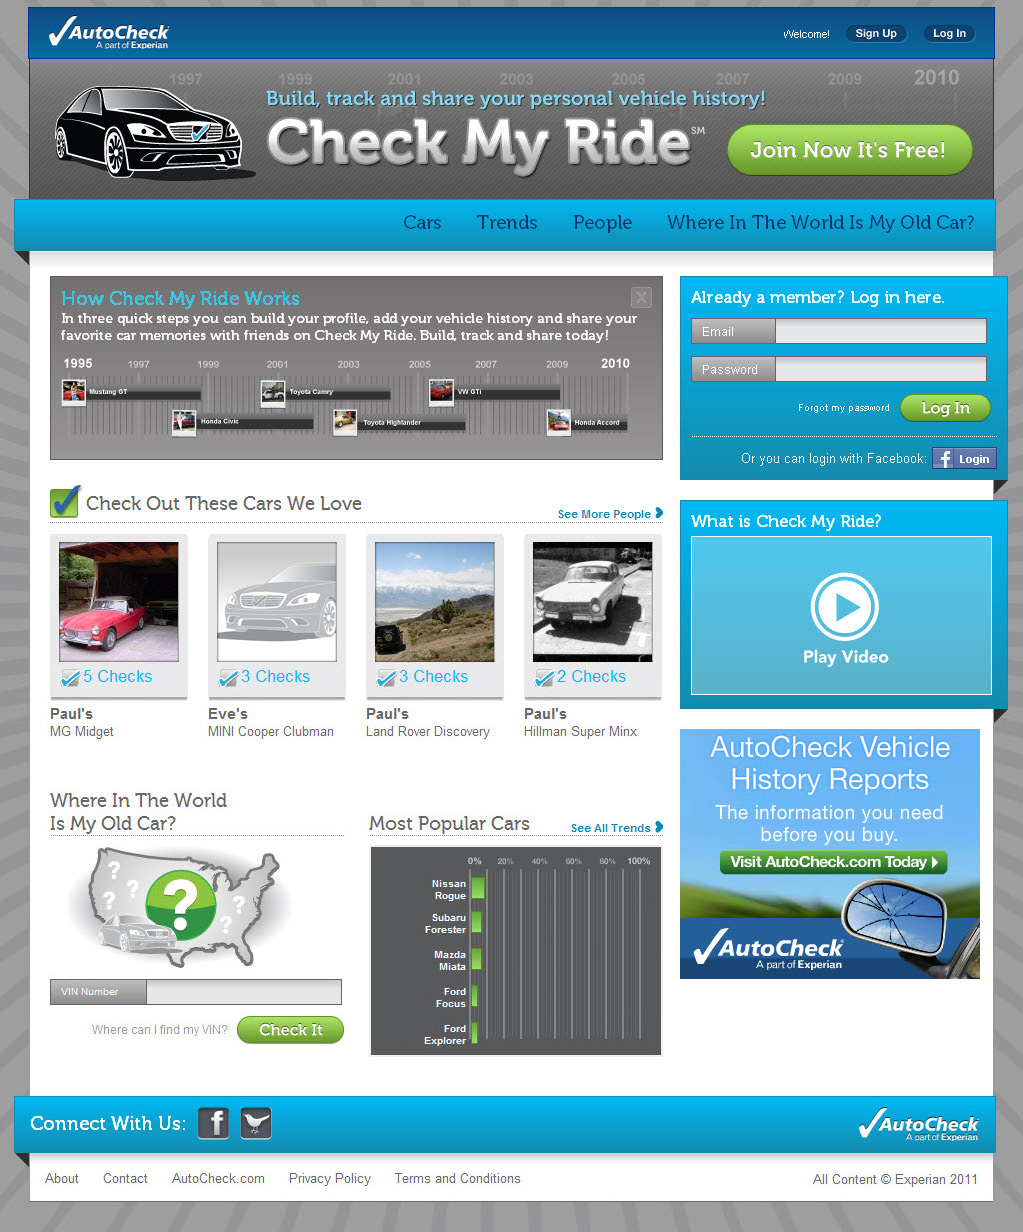 Experian Automotive's CheckMyRide.com